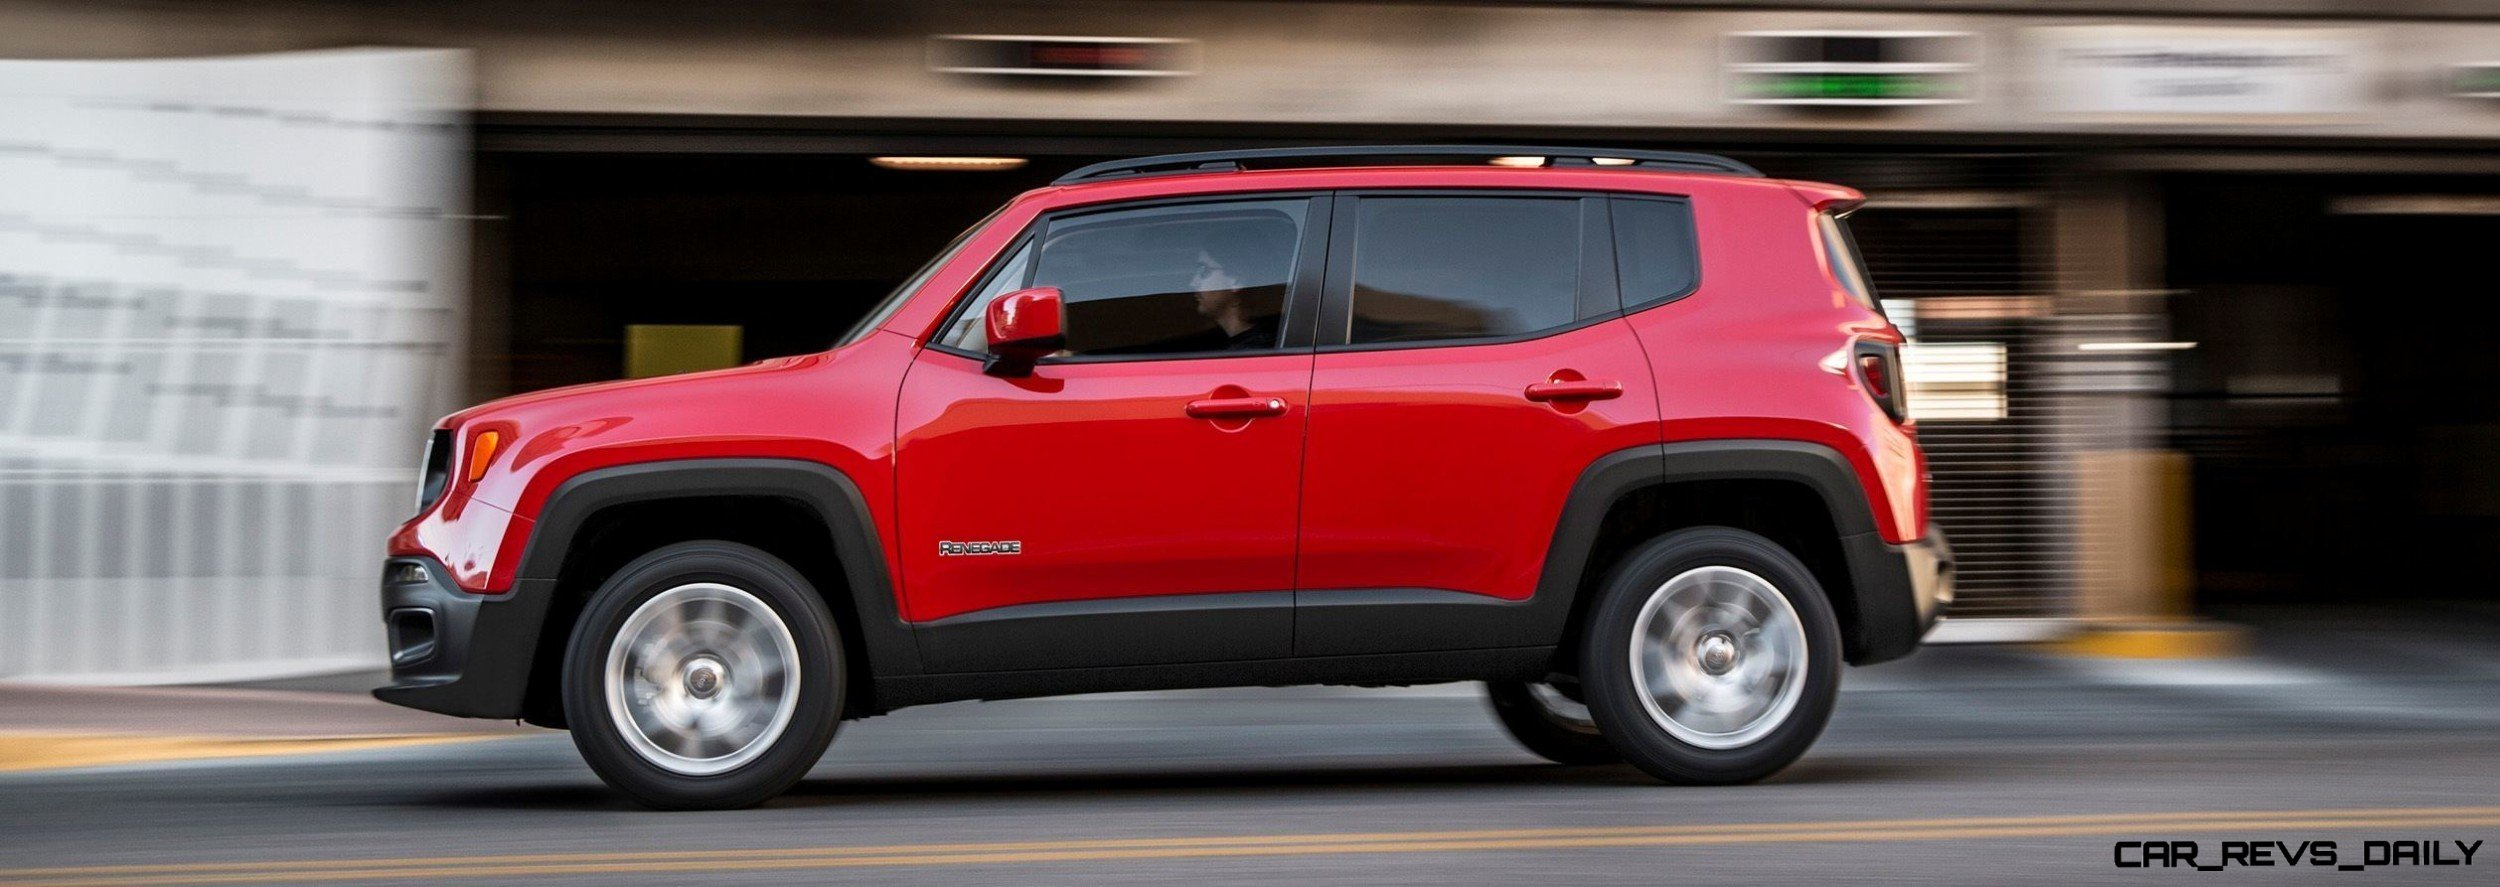 all-new 2015 Renegade combines the brand's heritage with fresh new